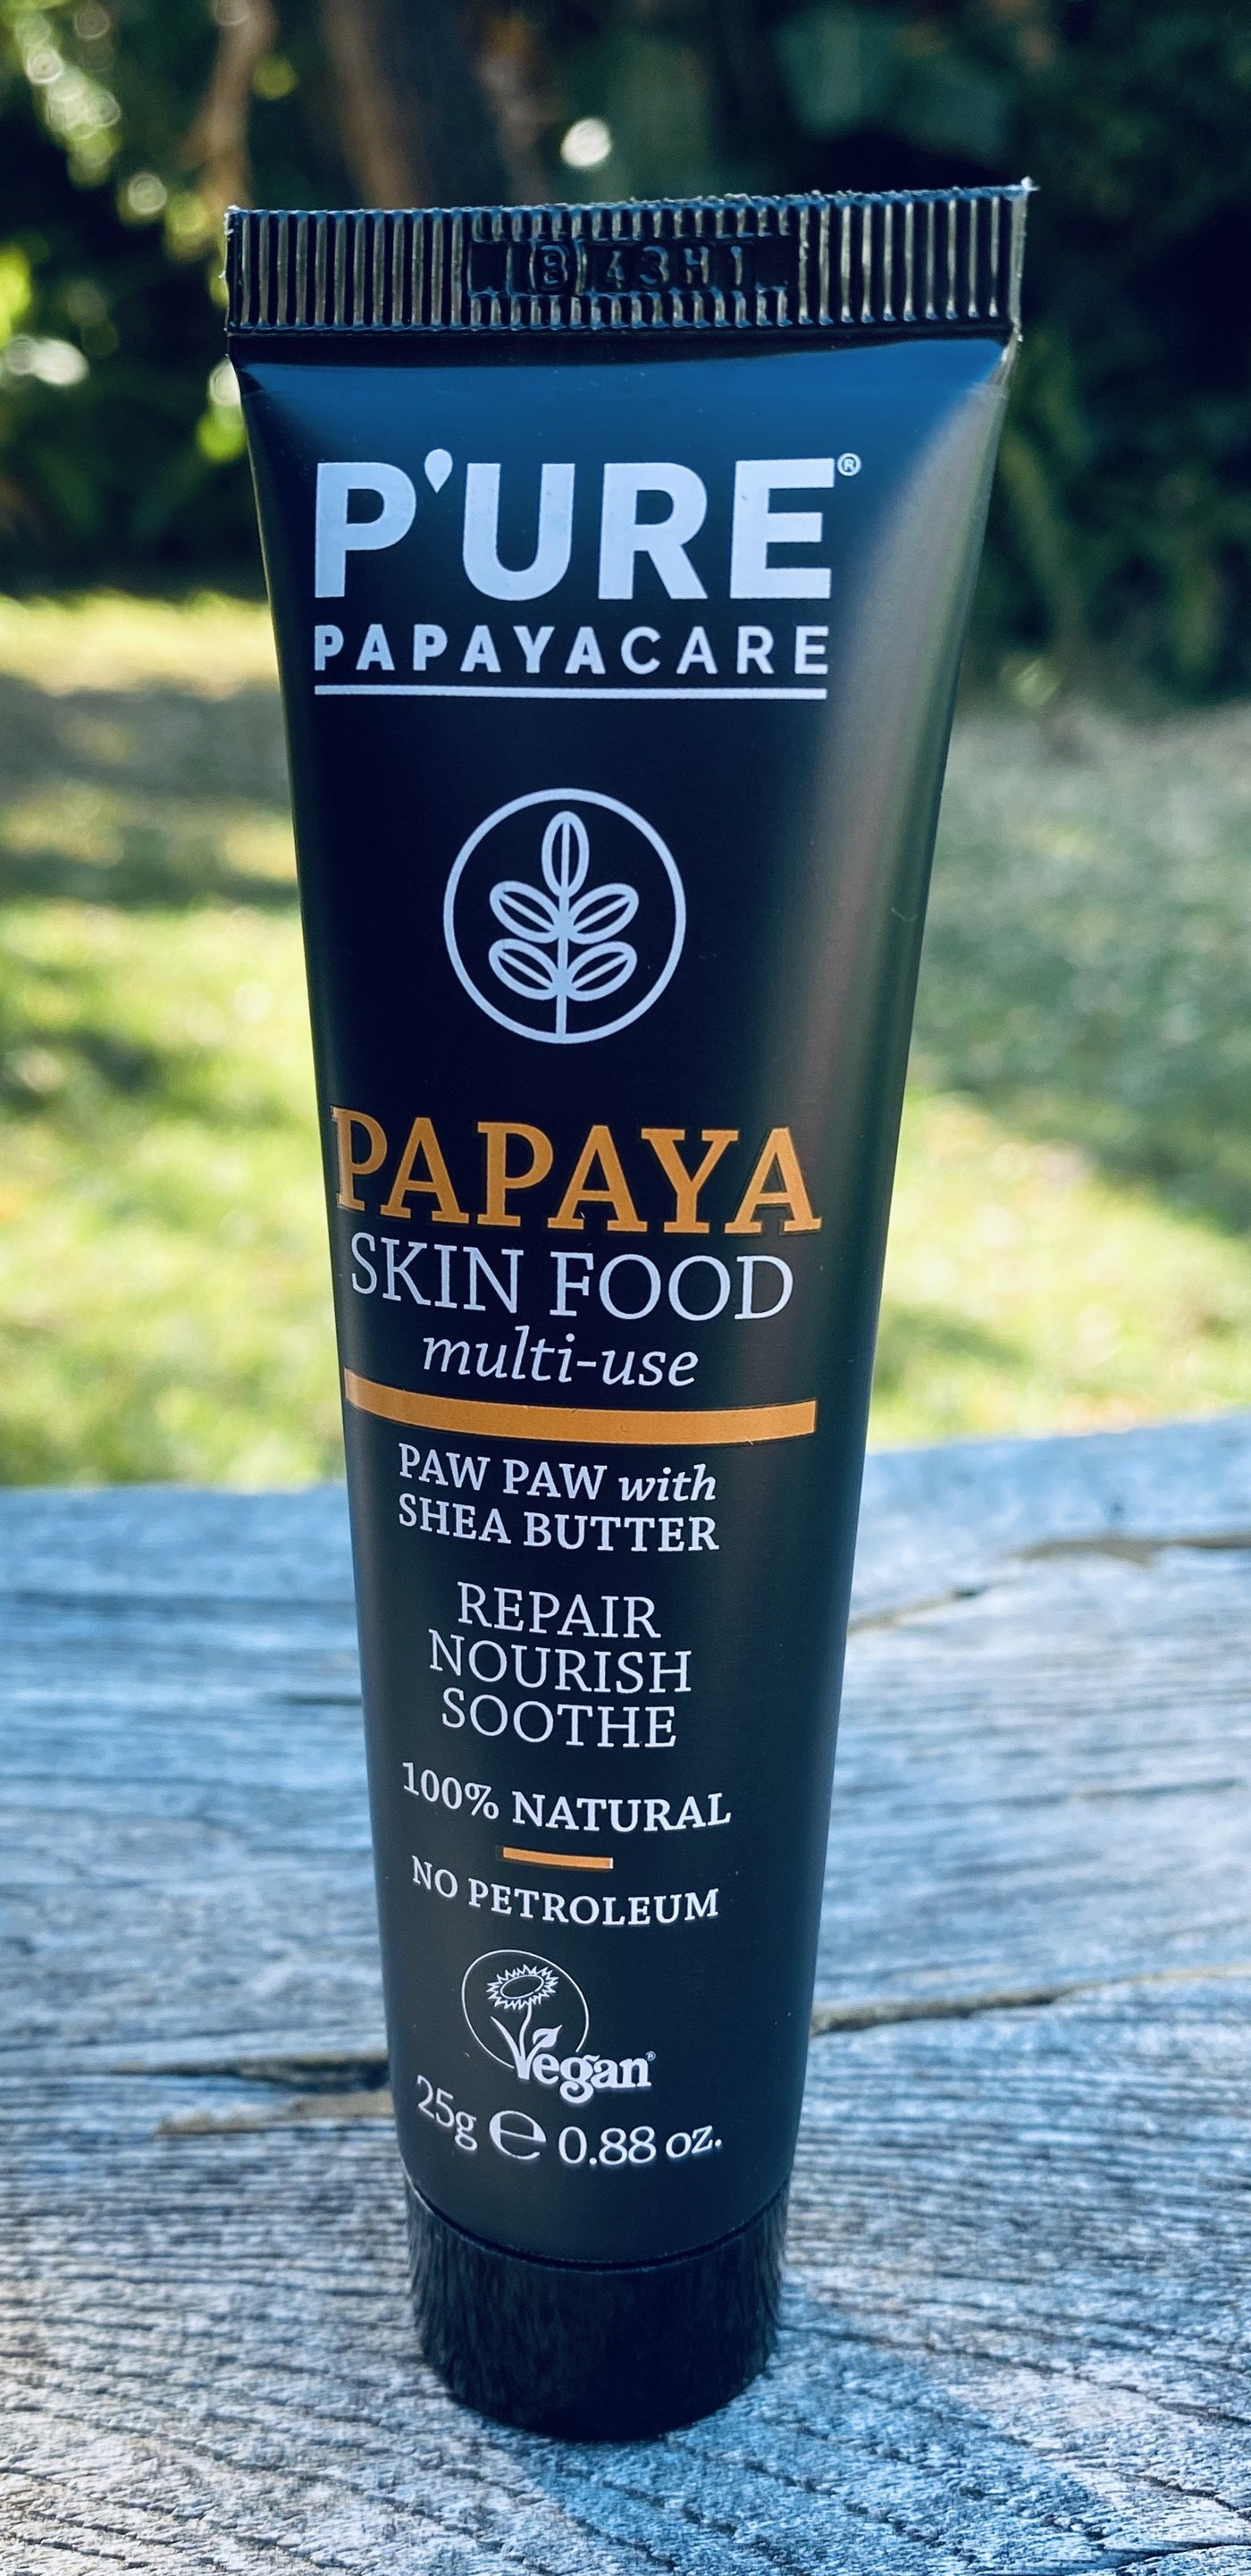 PURE Papaya Skin Food